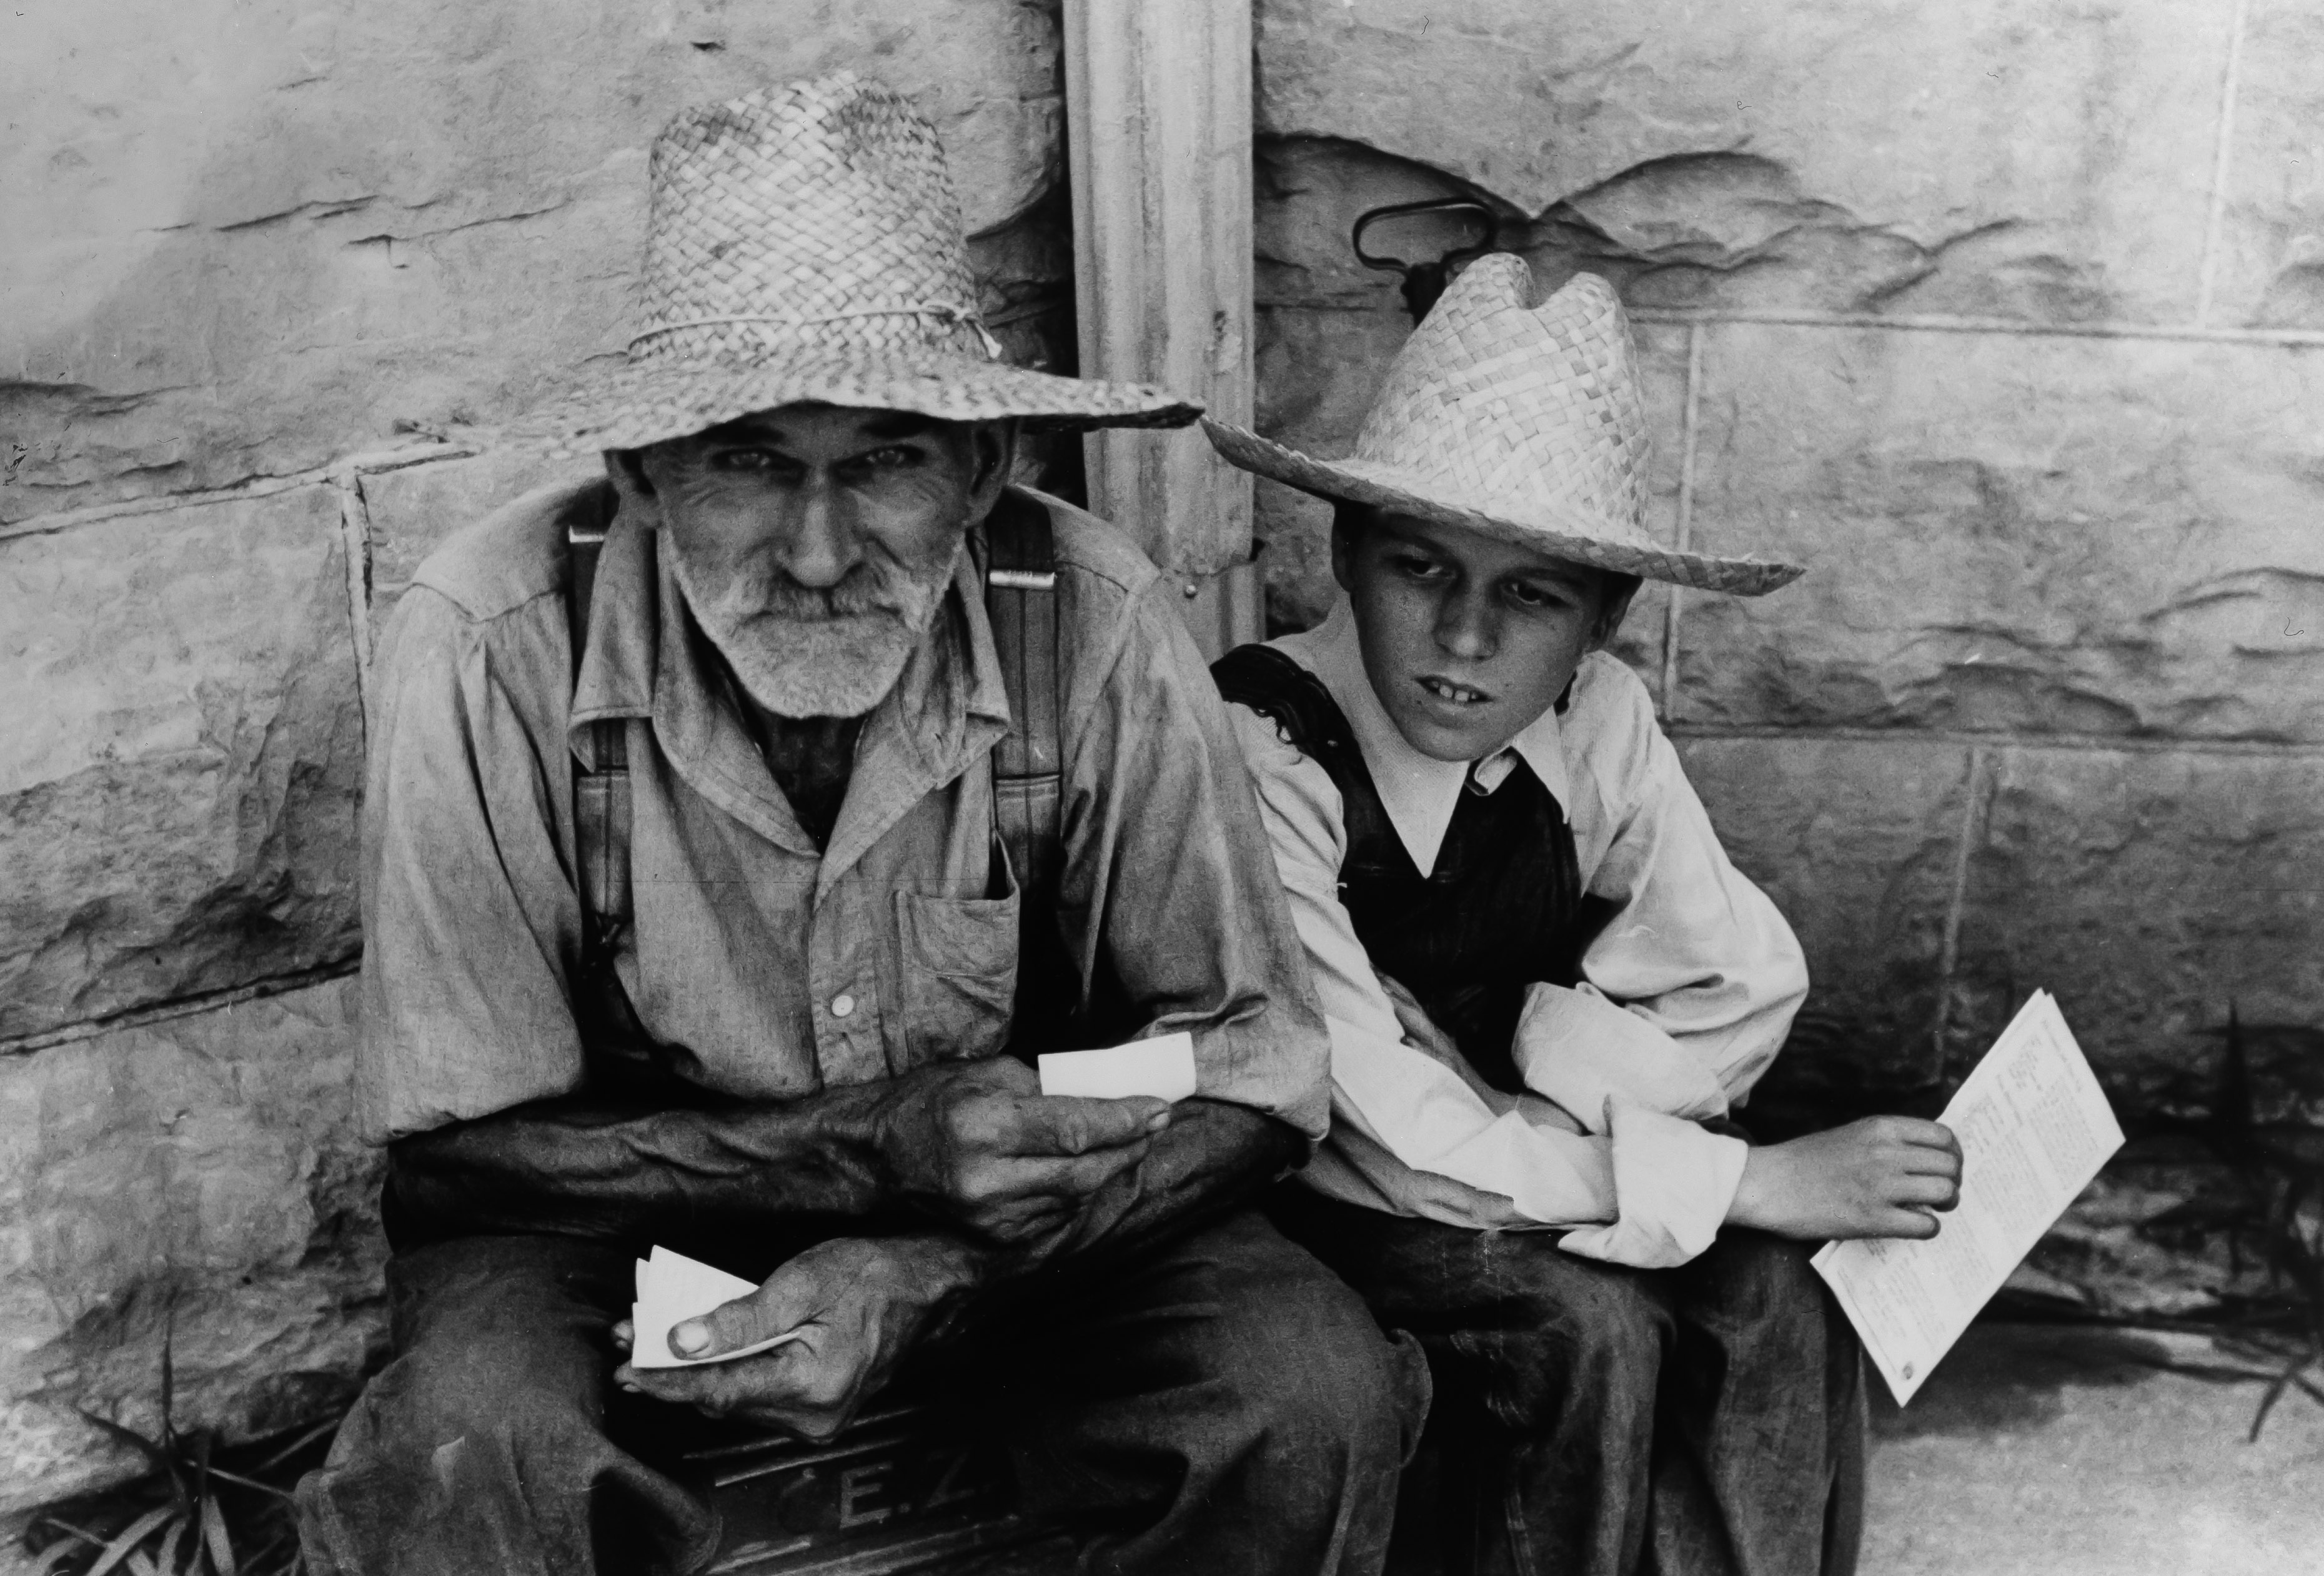 Ben Shahn | Photos of The Great Depression